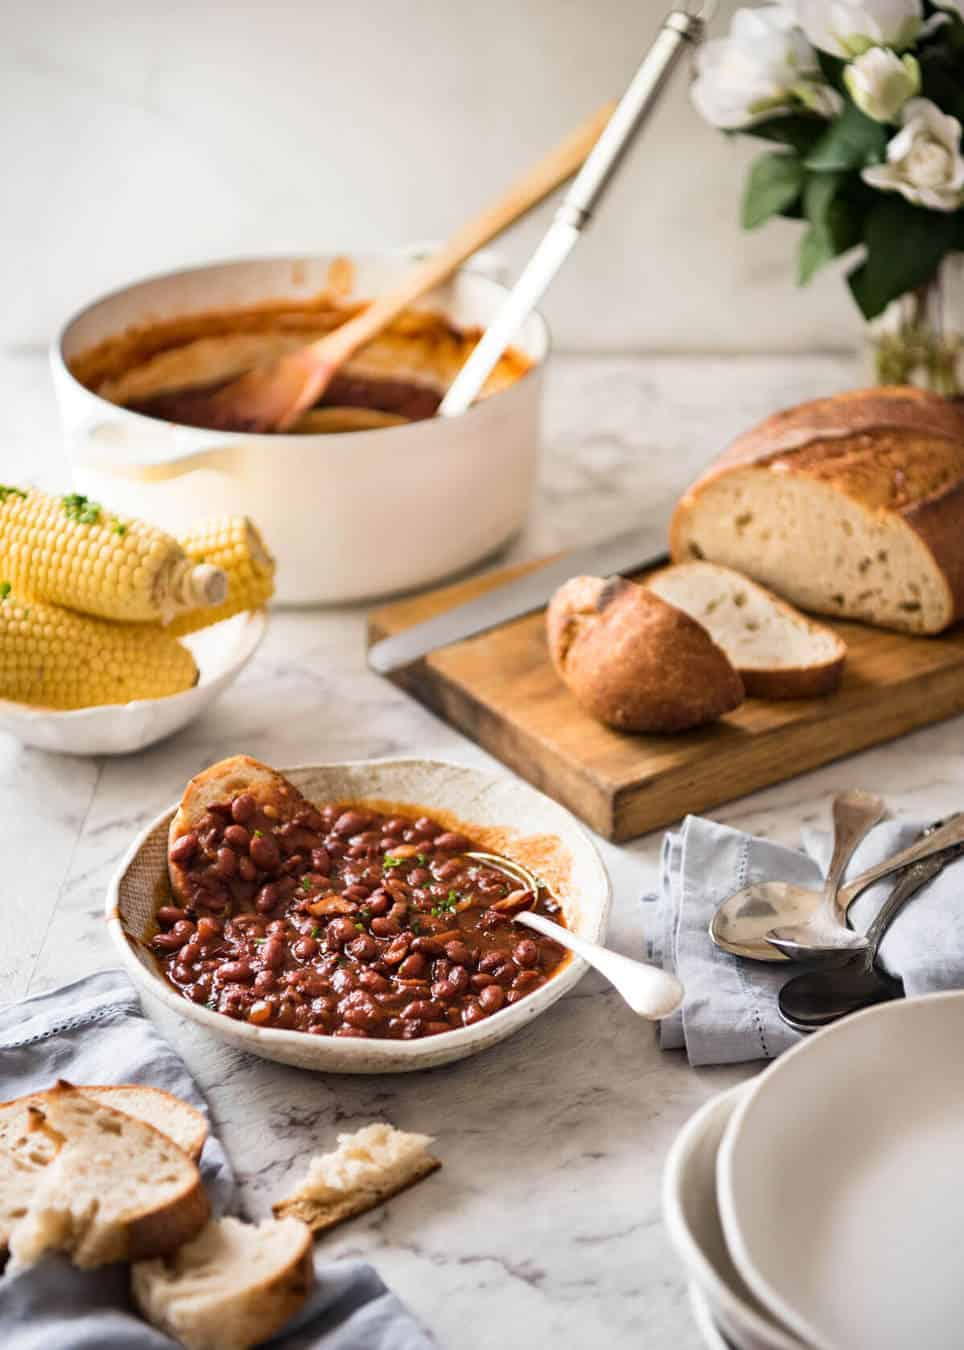 Homemade Baked Beans with Bacon - Thick, rich, luscious sauce with a perfect balance of sweet, tang and plenty of savoury! www.recipetineats.com